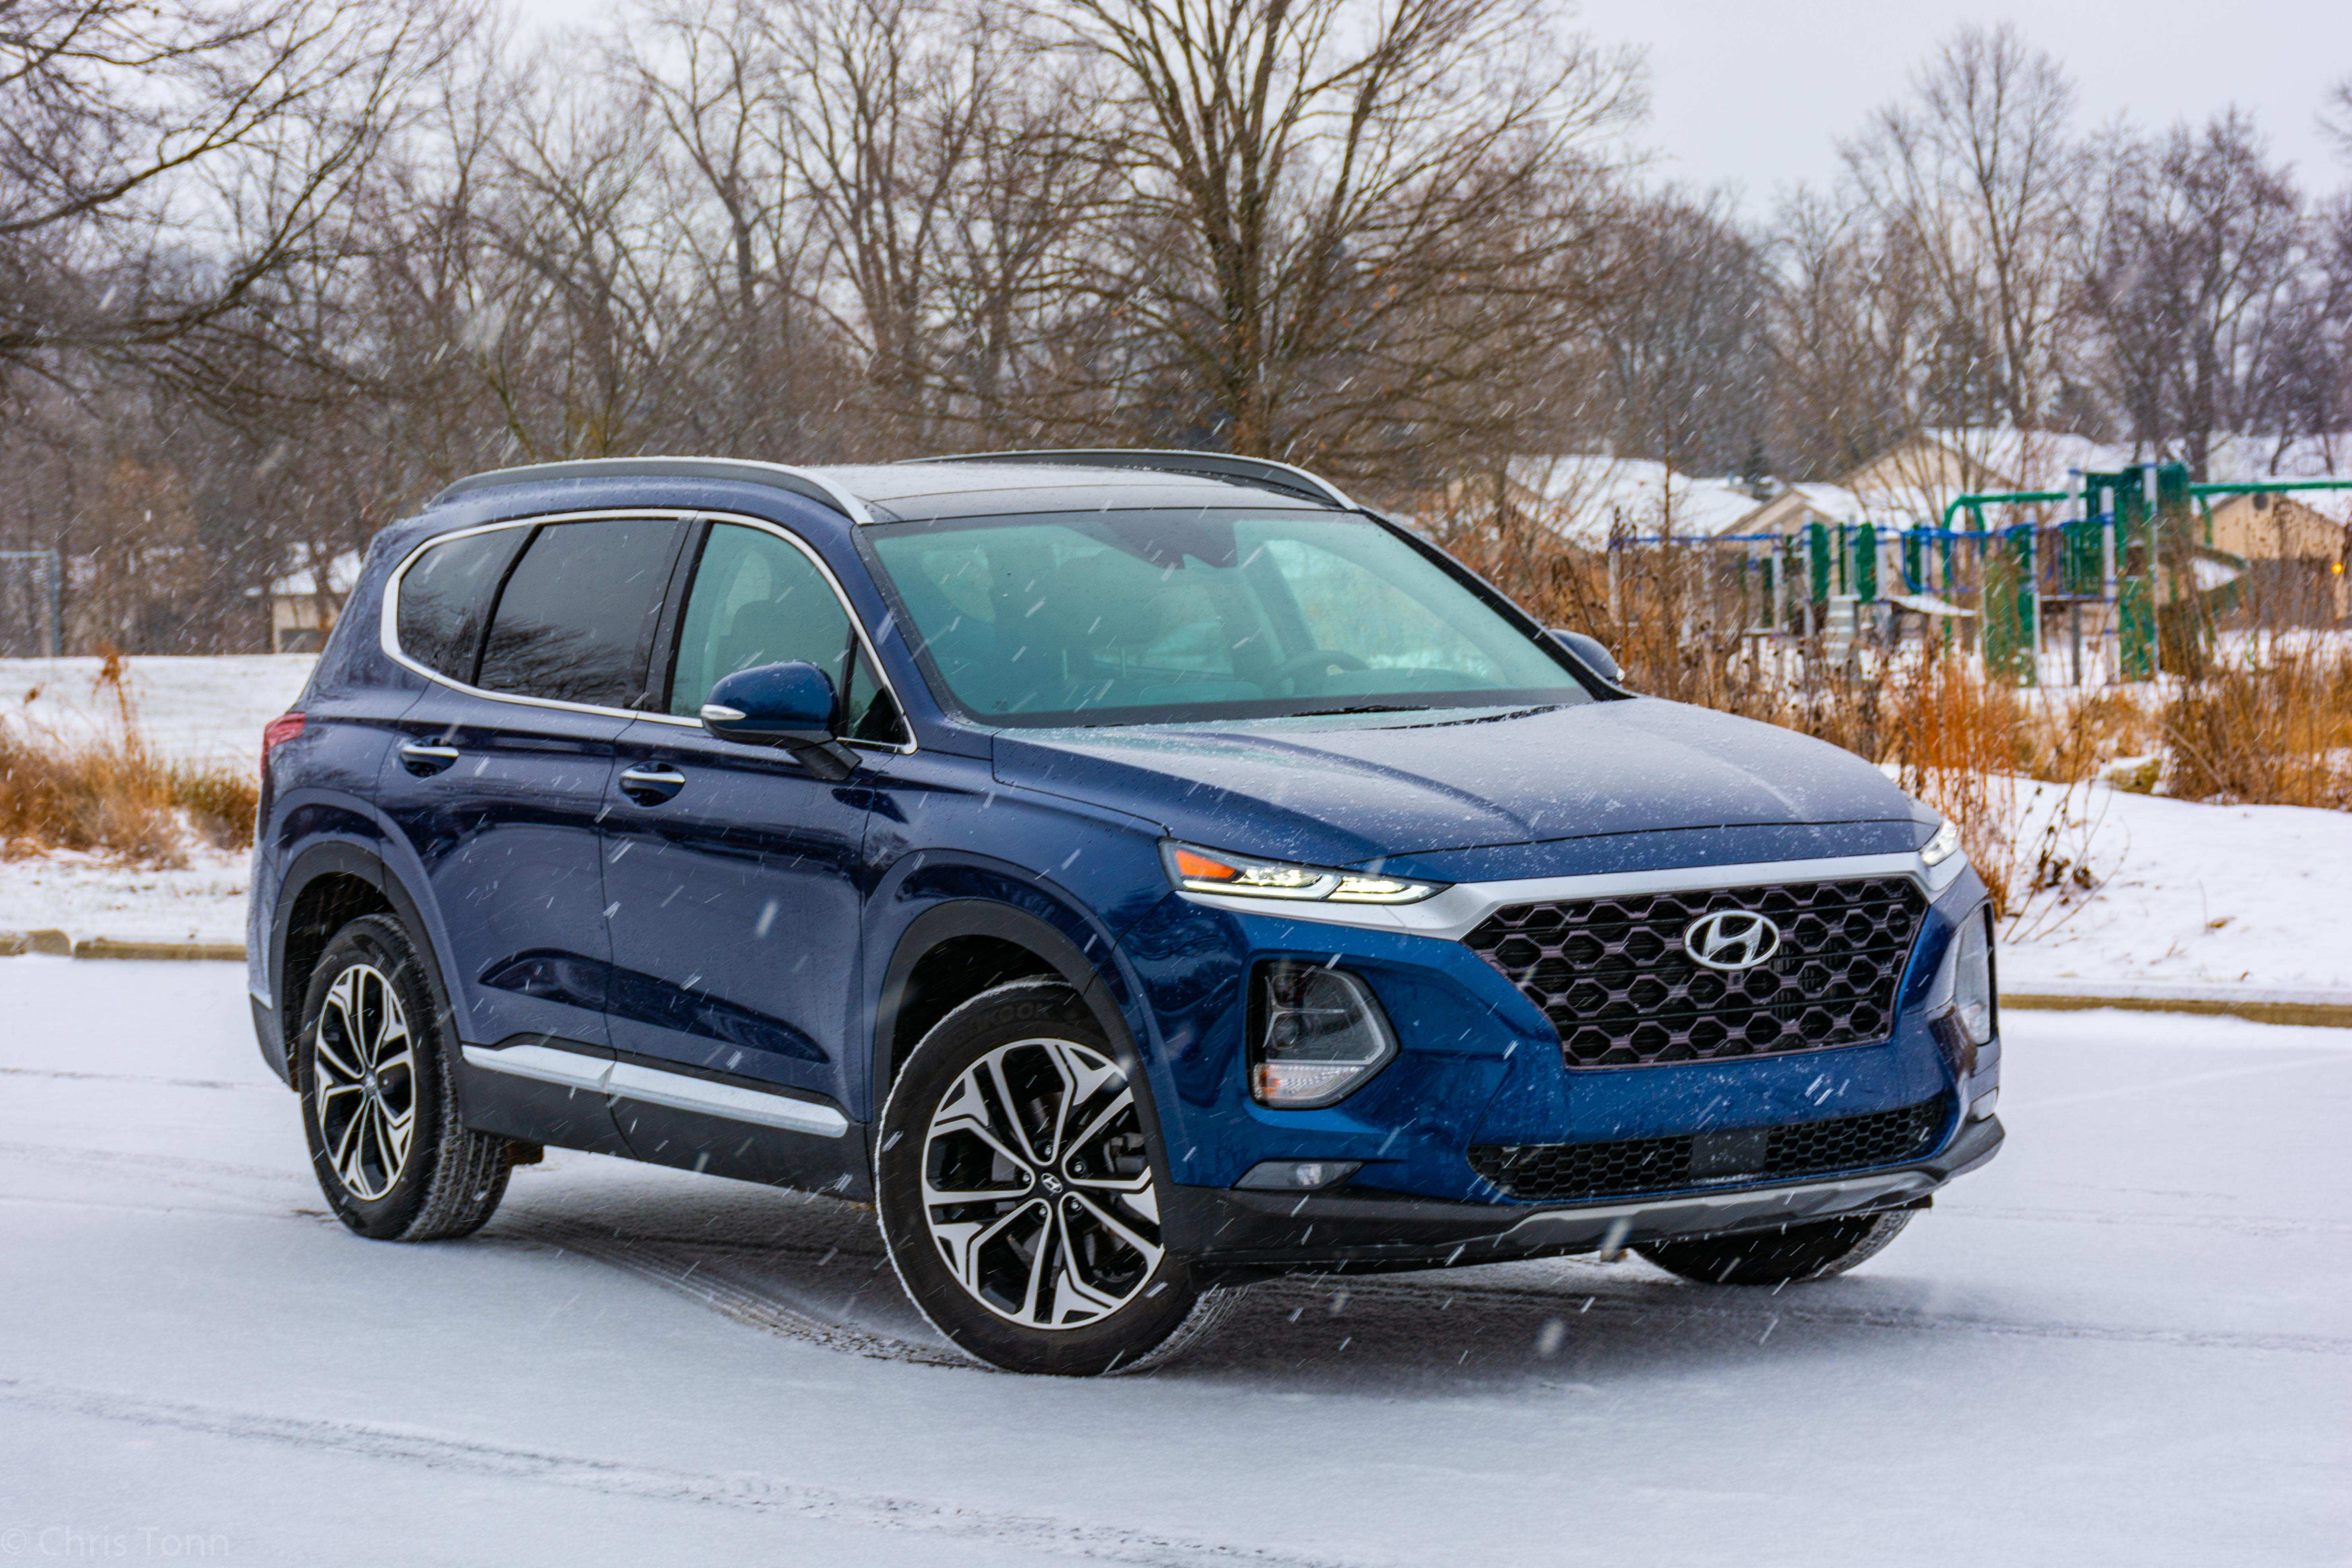 77 The Best The Santa Fe Kia 2019 Rumors Price